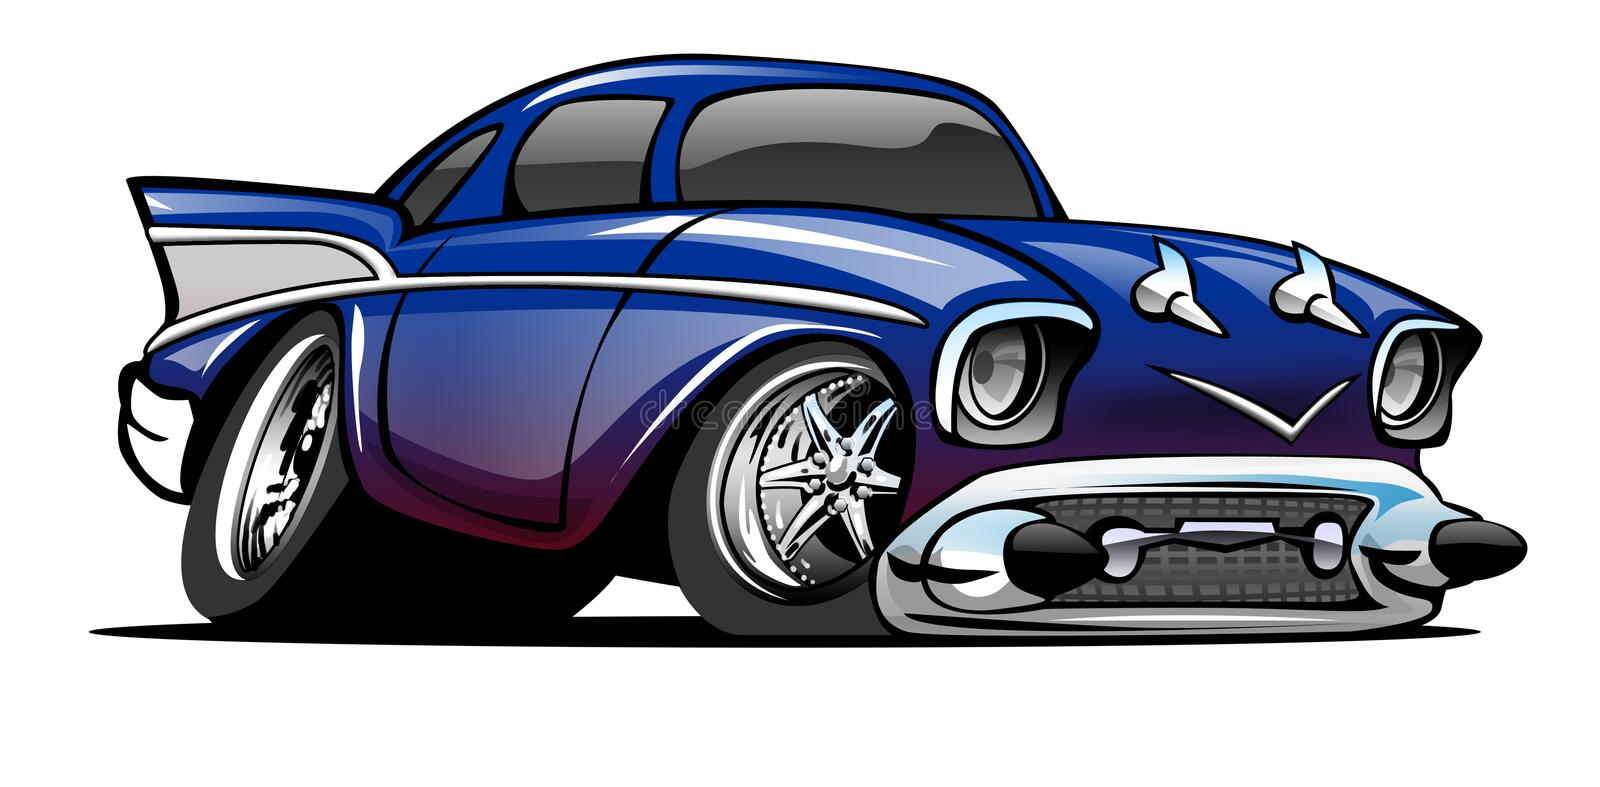 Classic American Hot Rod Cartoon Illustration vector illustration